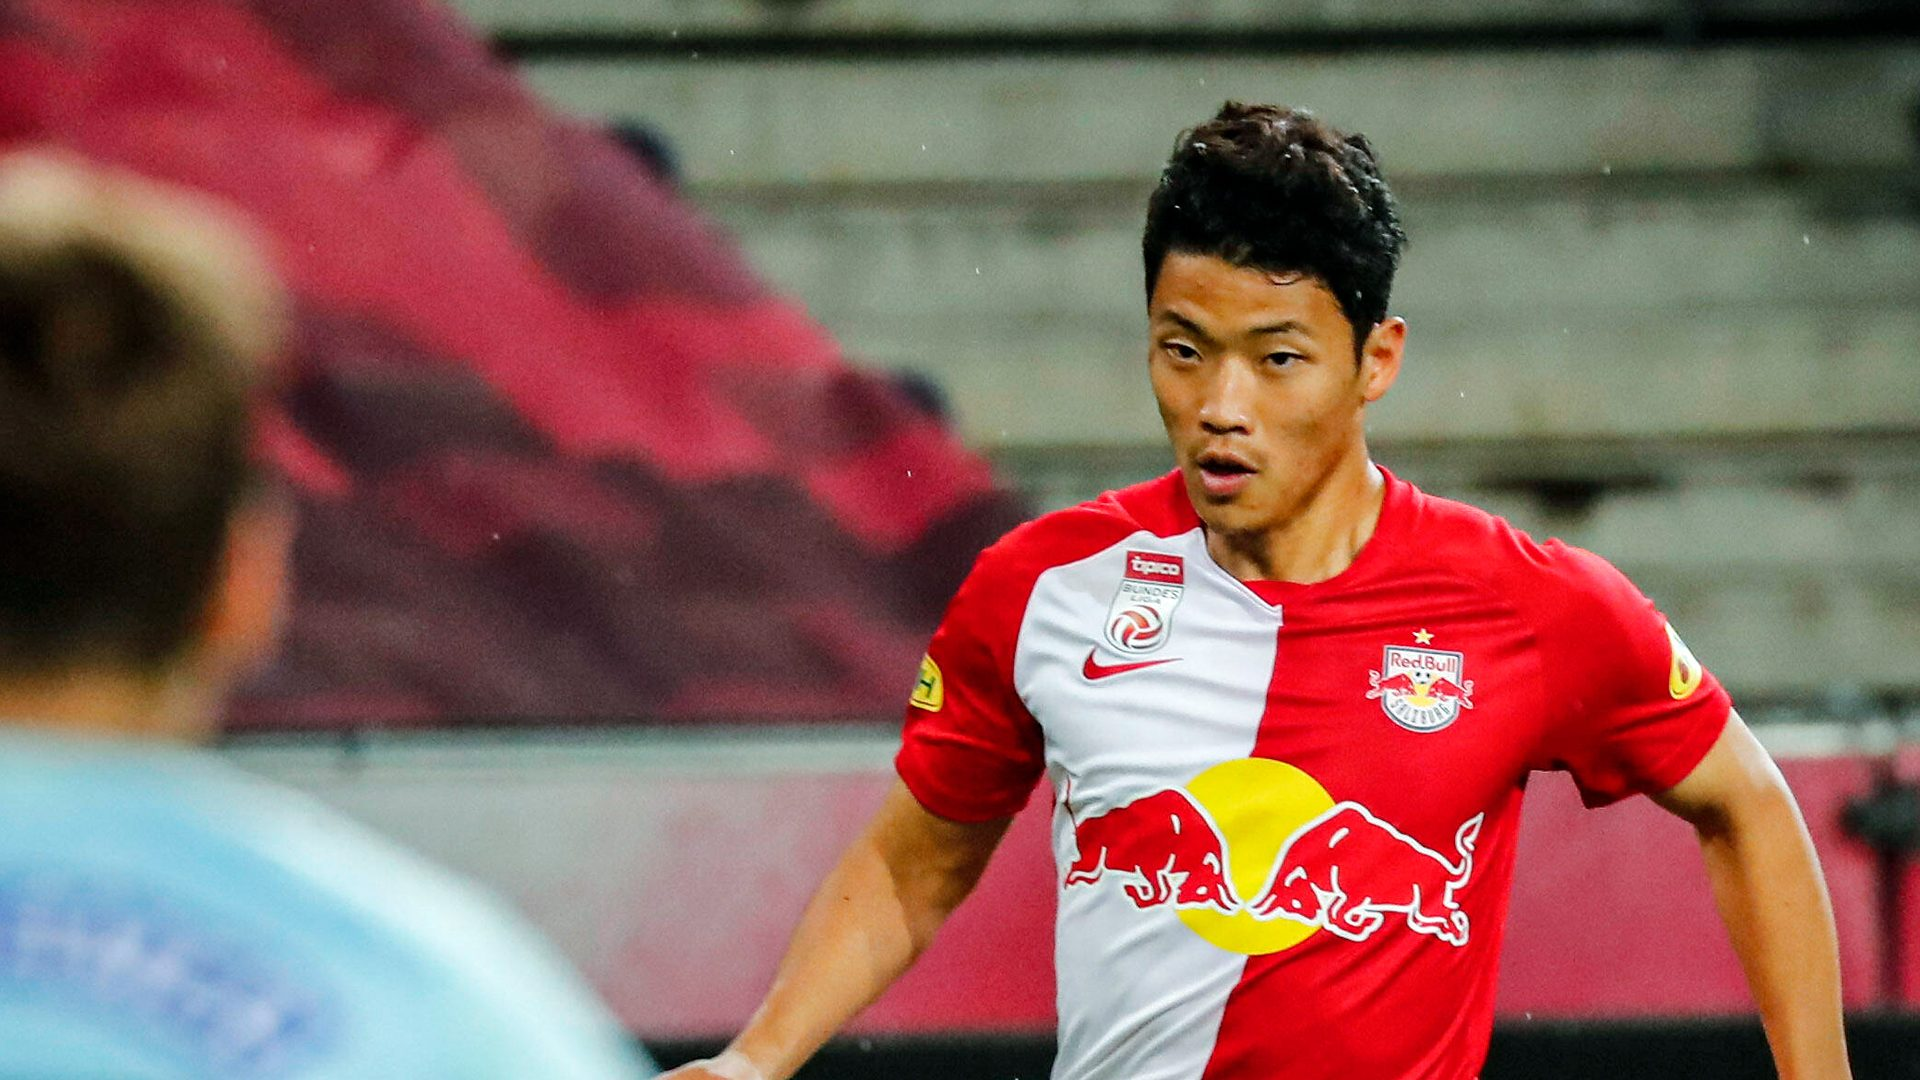 Bundesliga | Hwang Hee-chan: Who is the RB Leipzig forward from South Korea who could replace Timo Werner?